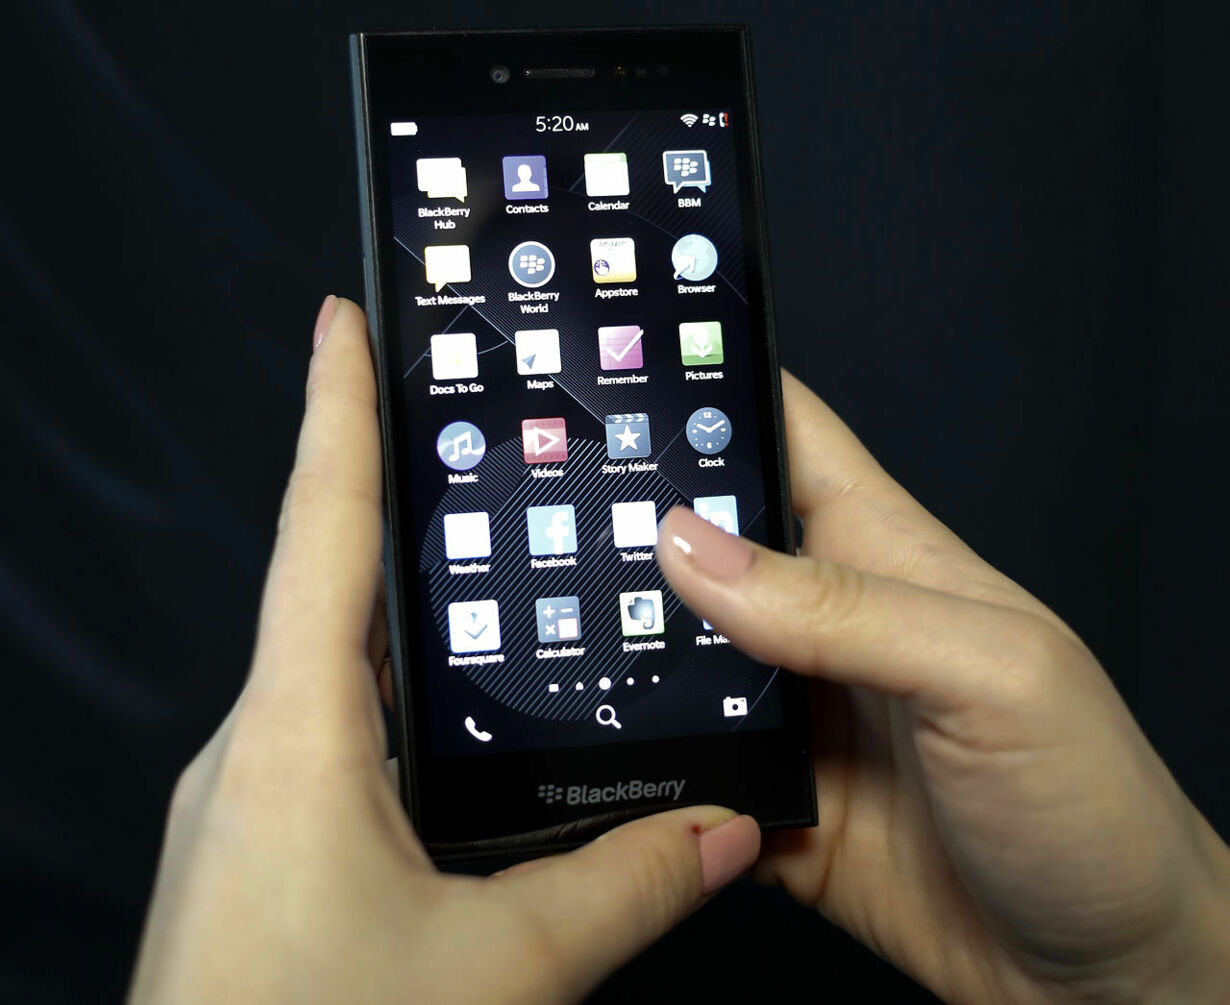 5-TELECOMS-MWC/BLACKBERRY